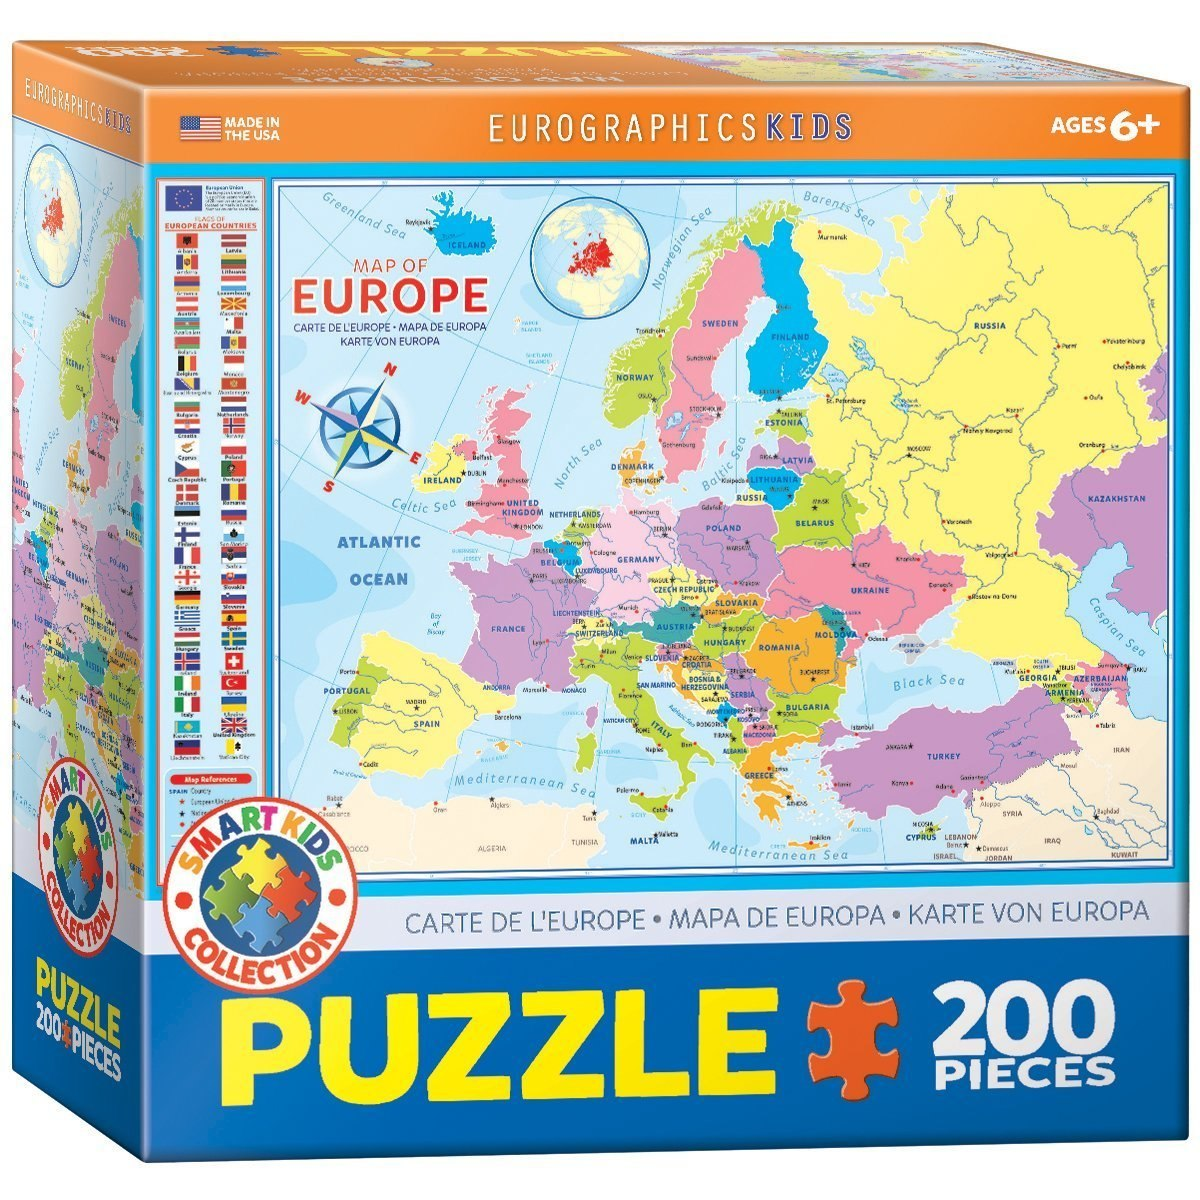 Map of Europe - 200pc Jigsaw Puzzle by Eurographics  			  					NEW